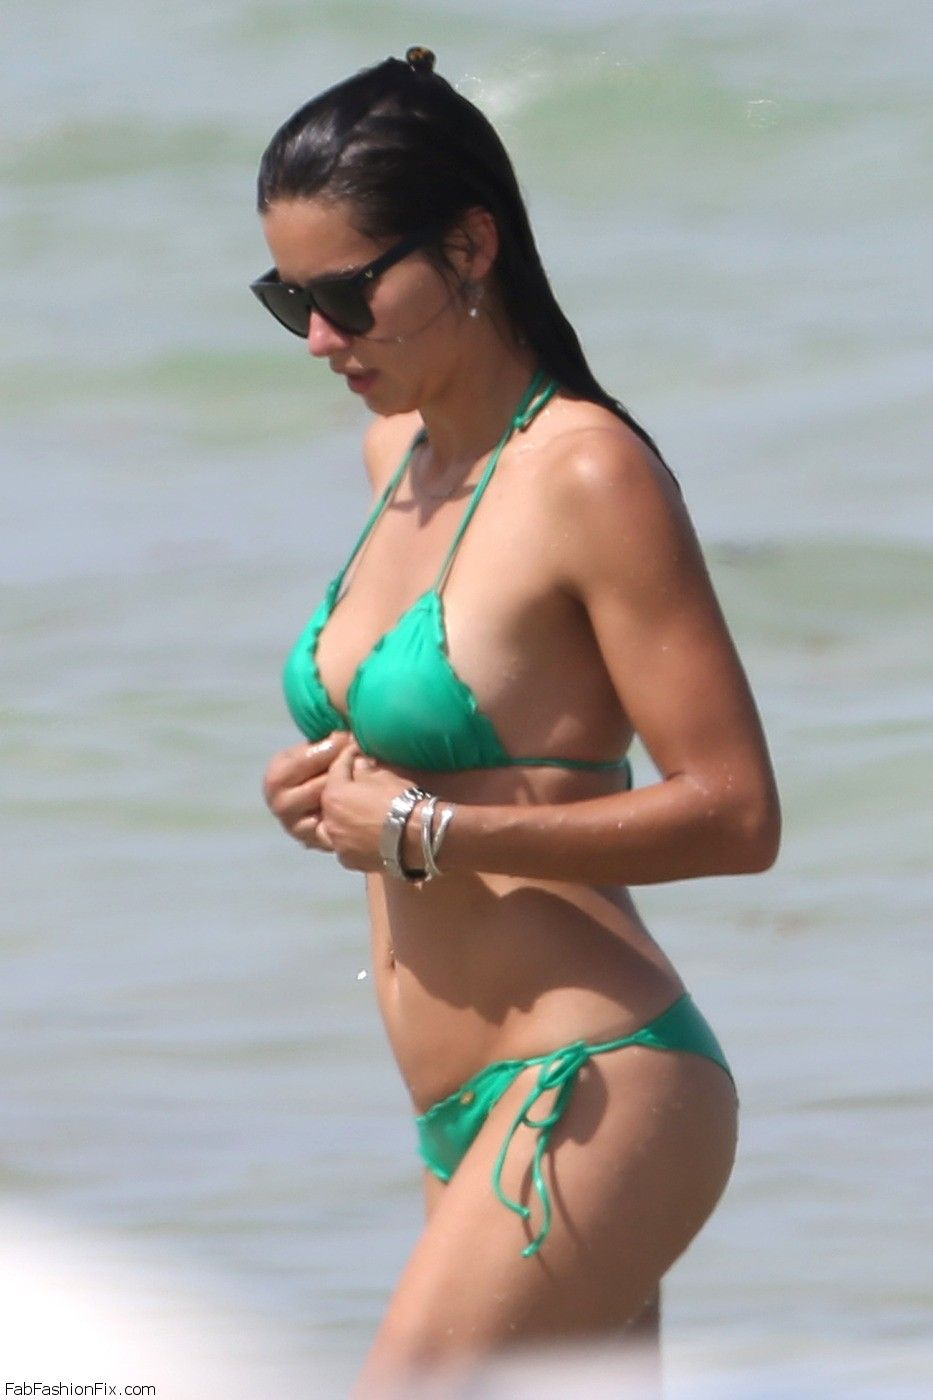 Newly single Adriana Lima wears a green bikini to the beach in Miami